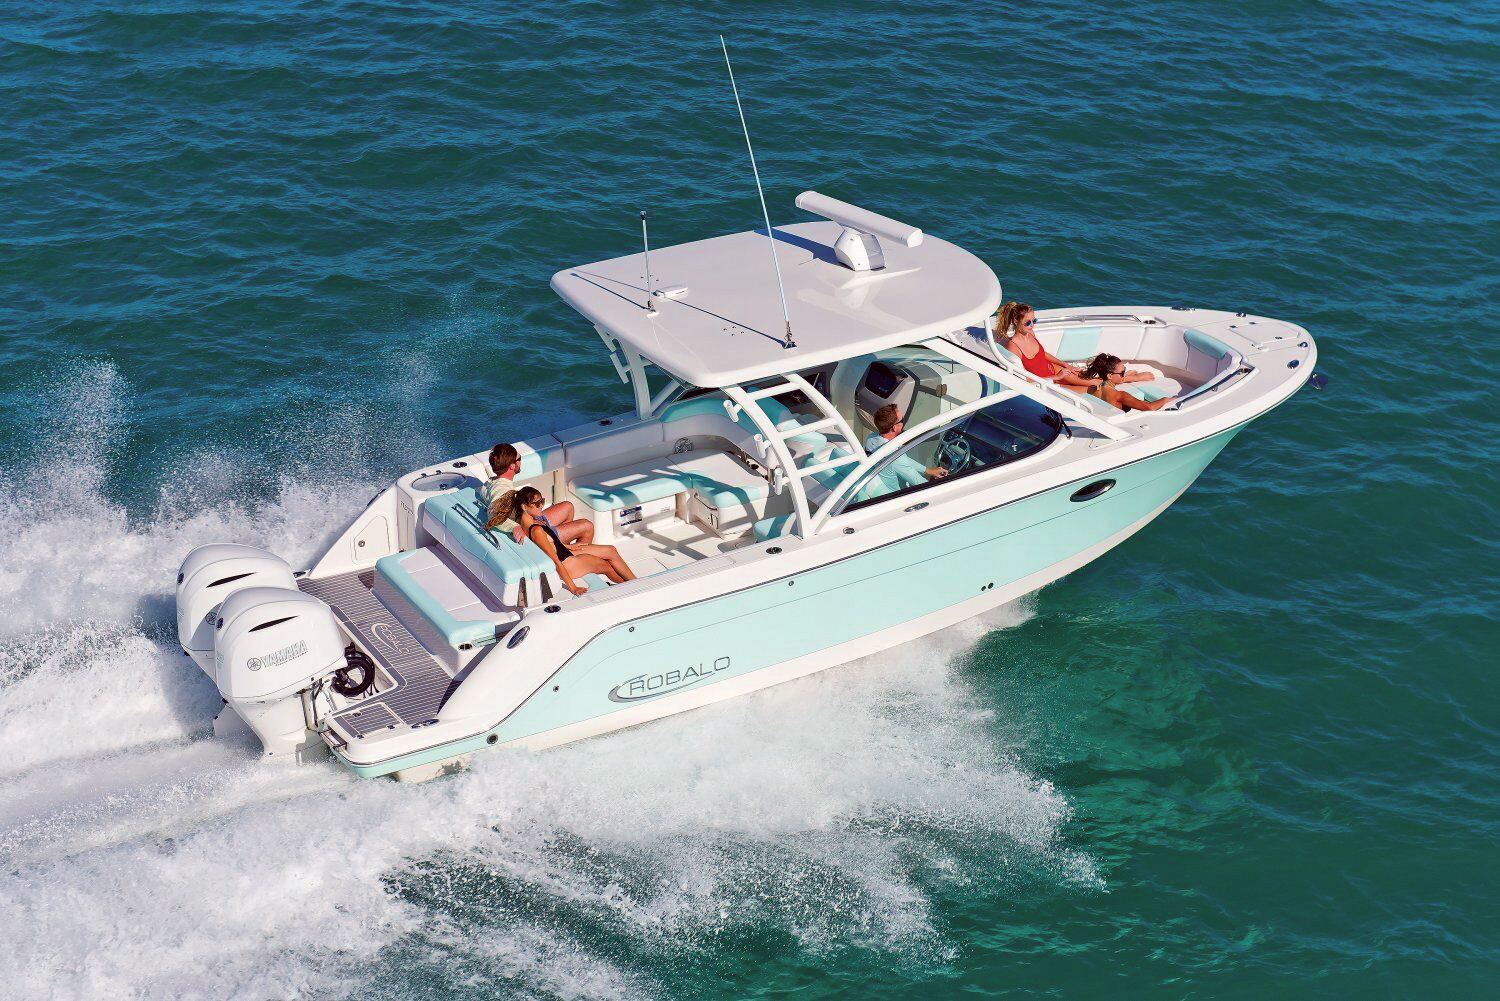 2018 1 Buyers Guide Robalo R317 DC Preview